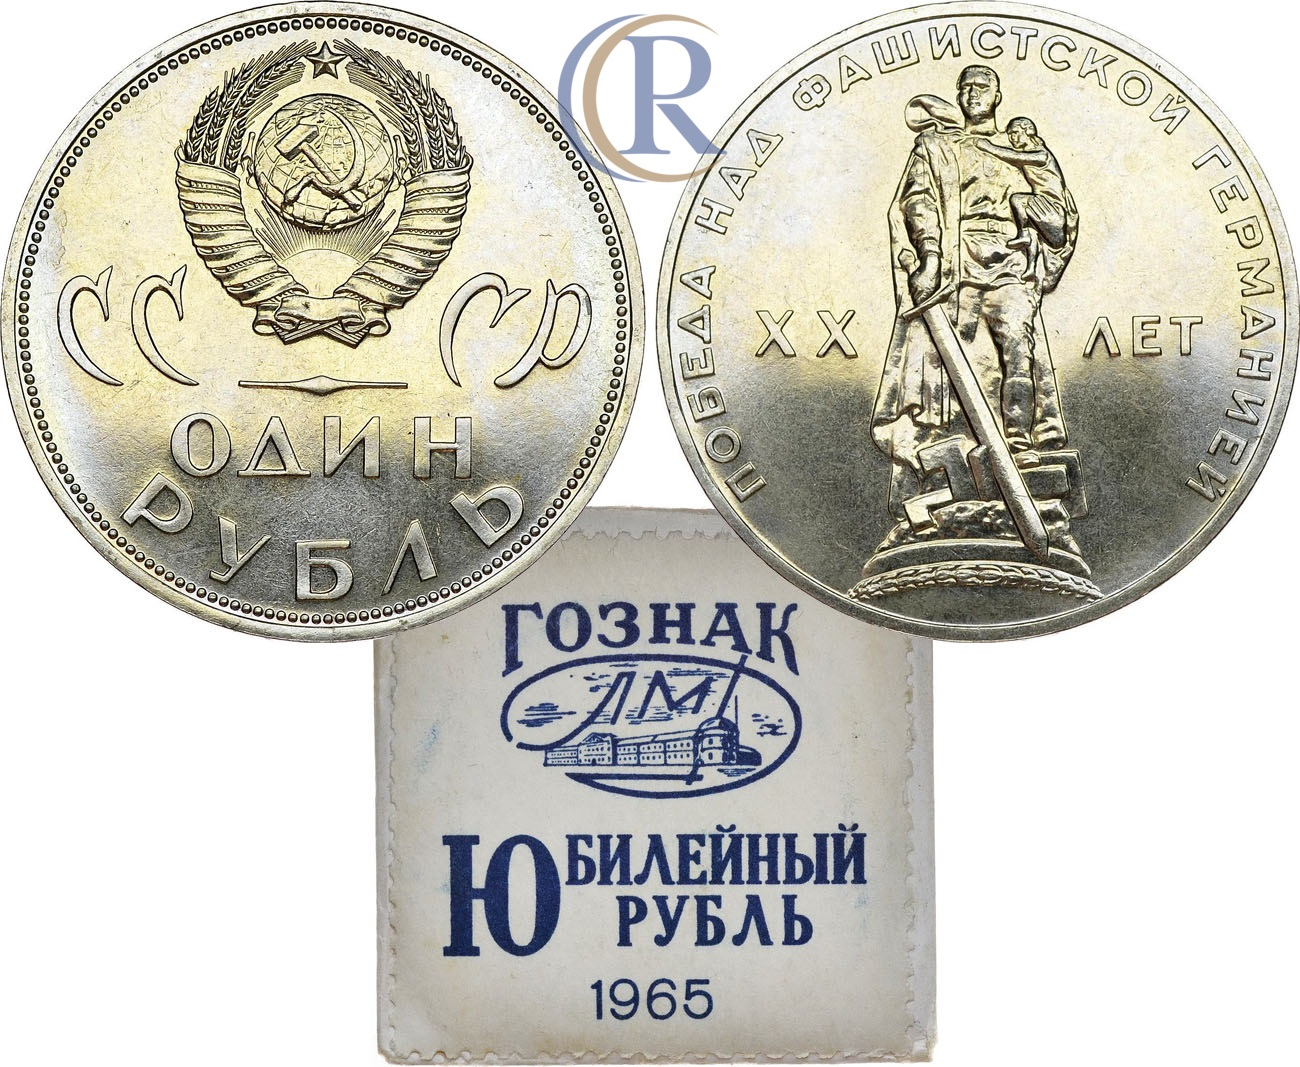 1965 Russia 1 Rouble  20th Anniversary of World War II Victory